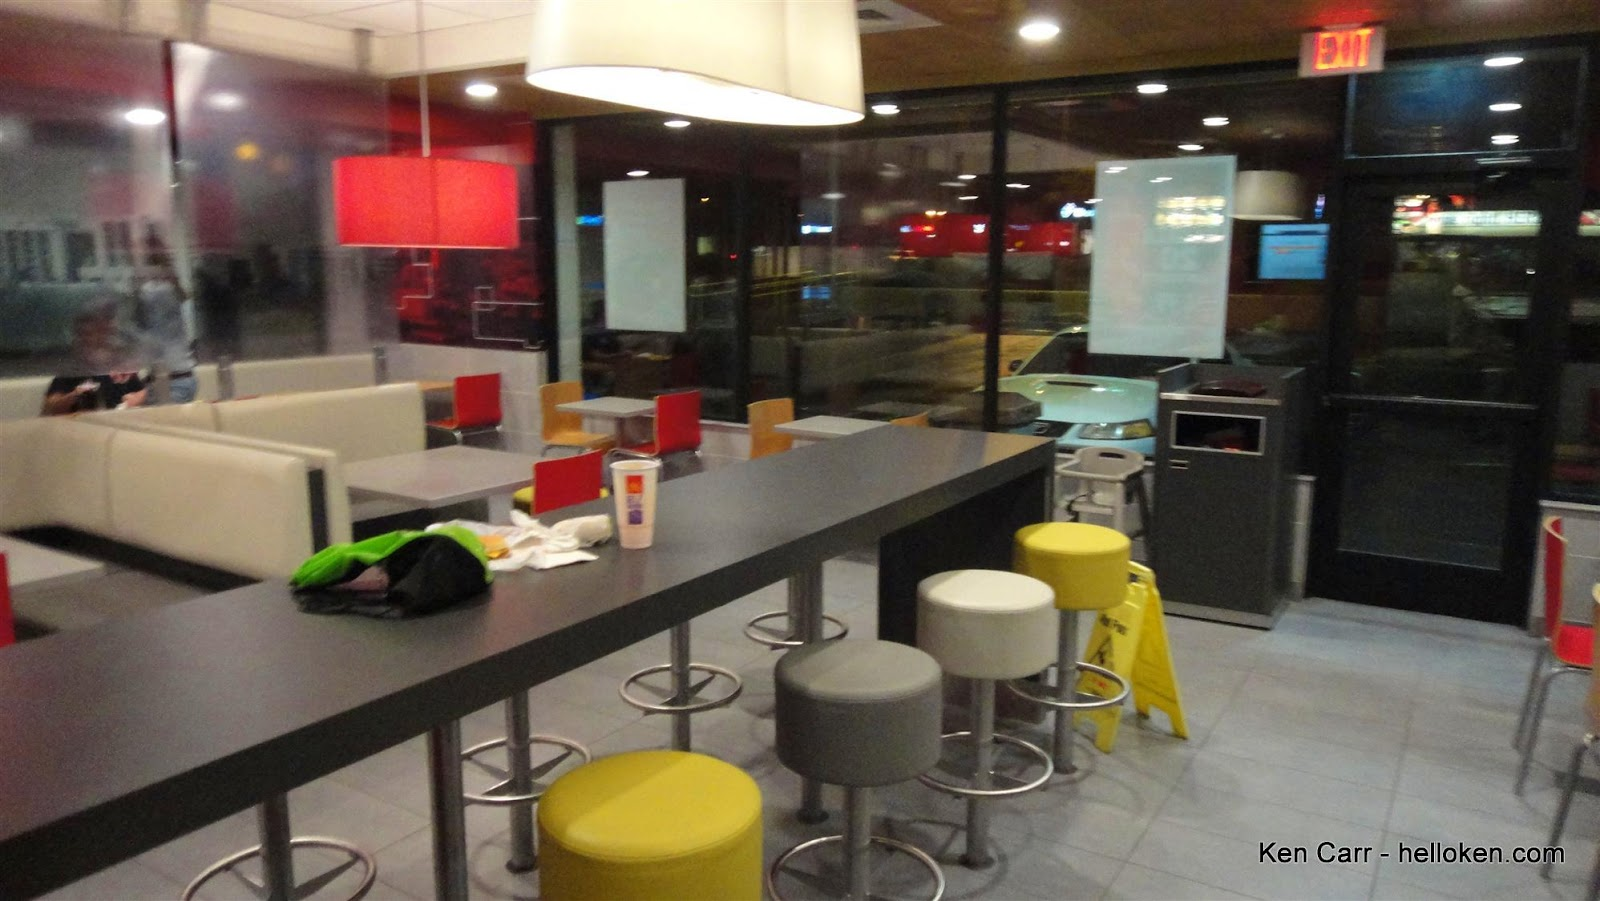 Ken carr blog a visit to the remodeled mcdonalds at speedway and the mcdonalds dining room this photo didnt come out a bit blurry and wouldnt have normally posted it but i wanted to show you sxxofo